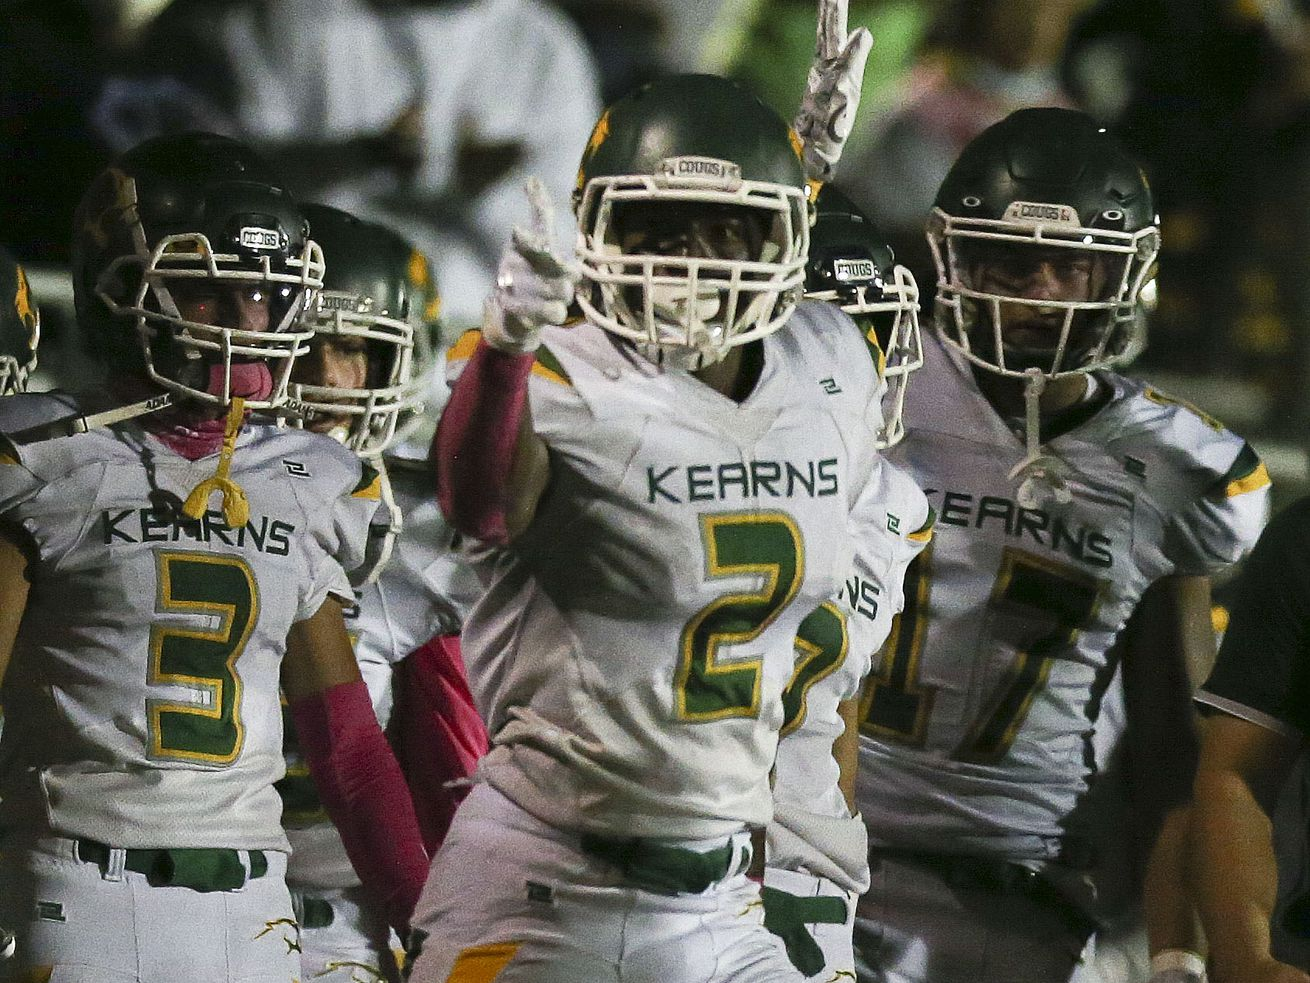 West High and Kearns compete in a high school football game at West High School in Salt Lake City on Friday, Oct. 9, 2020.